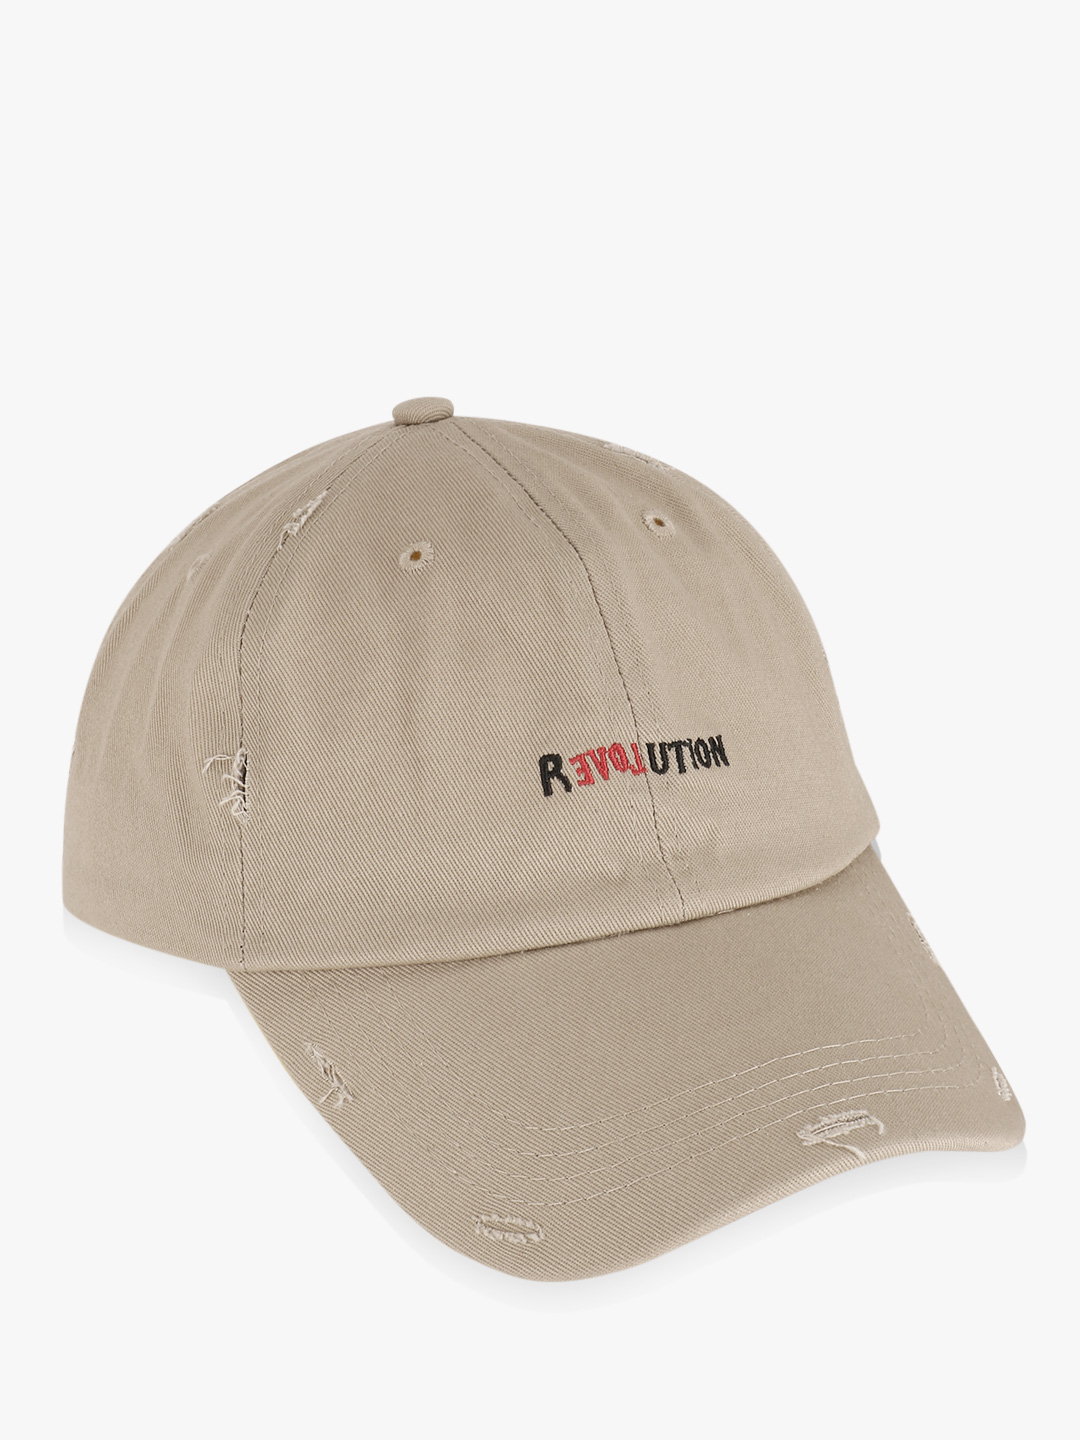 New Look stone Revolution Embroidered Distressed Cap 1